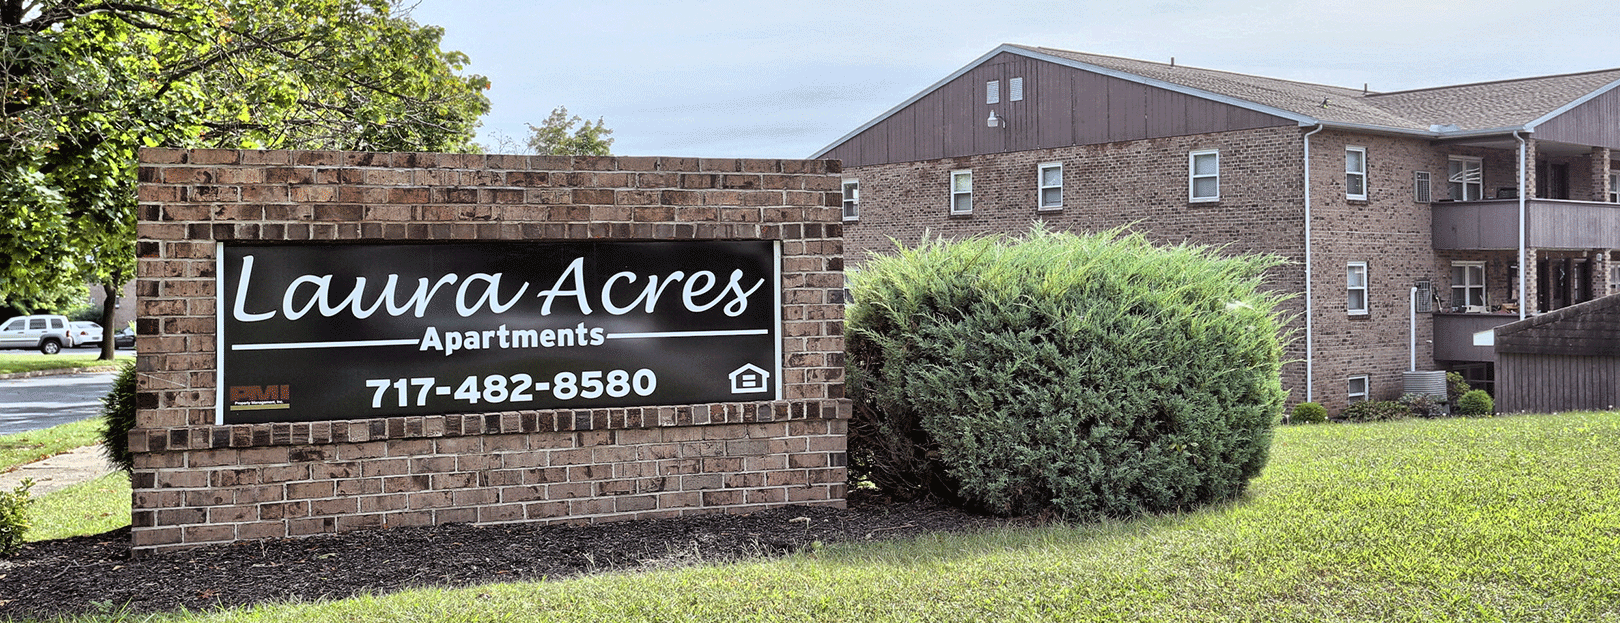 3 Bedroom Apartment in Harrisburg, PA | Laura Acres | Property Management, Inc.